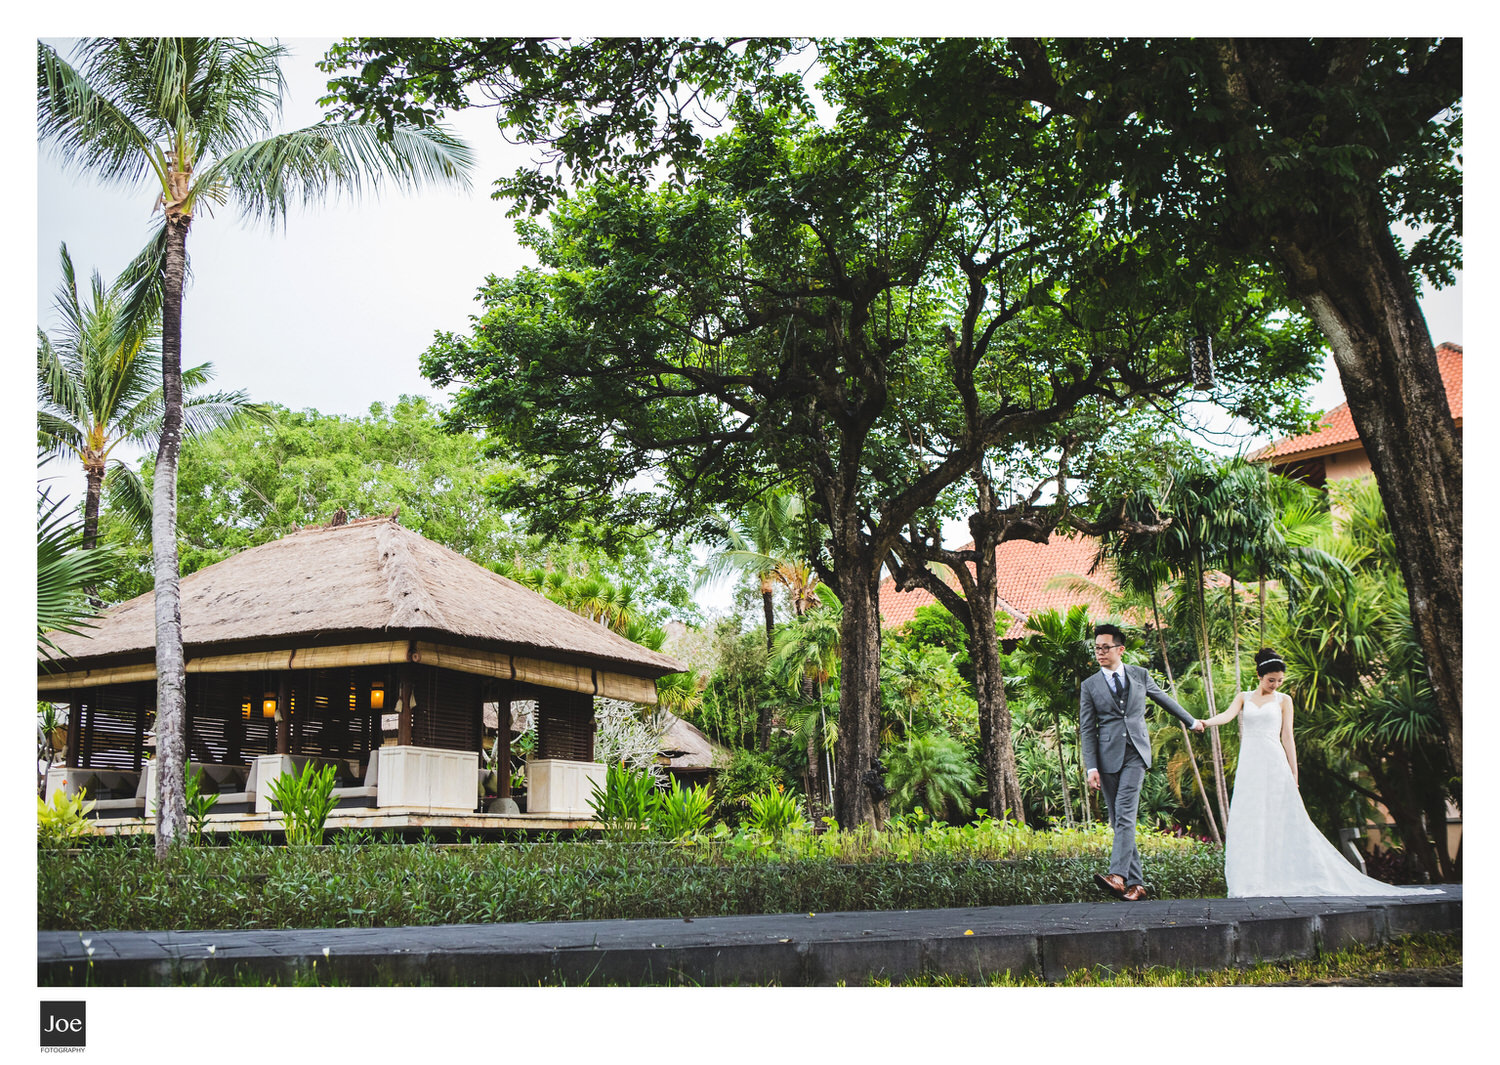 joe-fotography-bali-wedding-ayana-resort-janie-sean-61.jpg